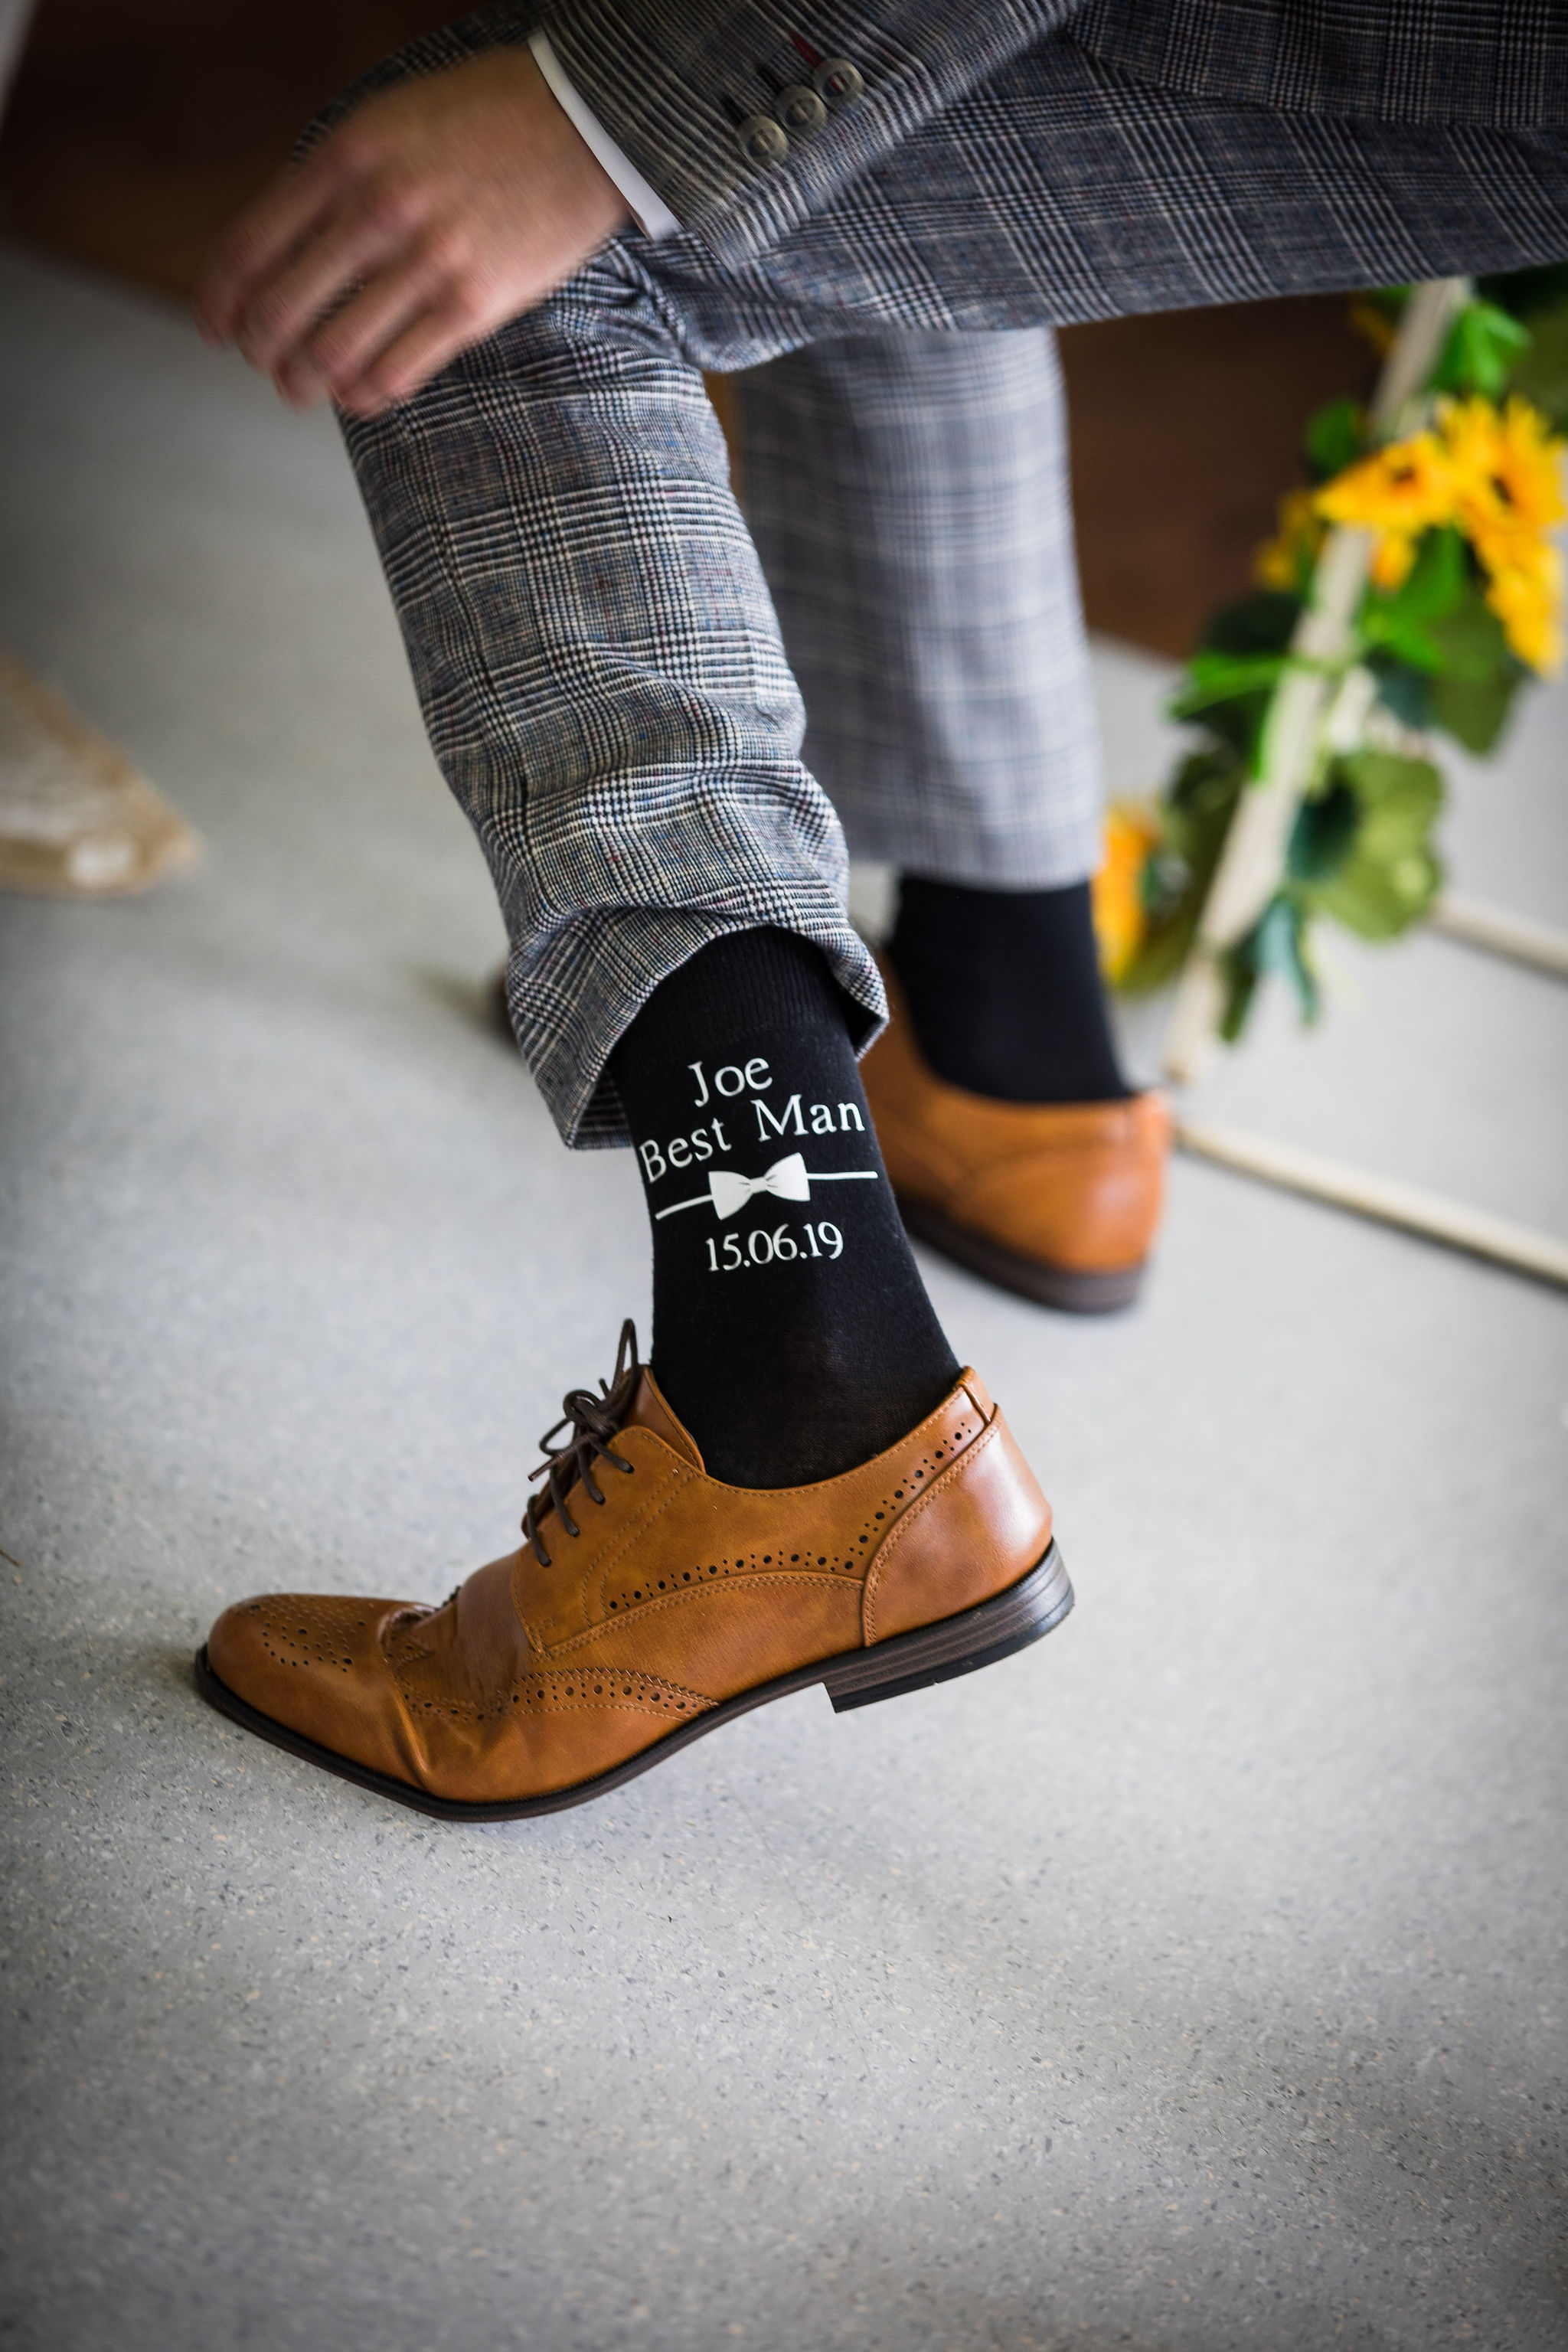 Harriet&Rhys Wedding - Best Man socks